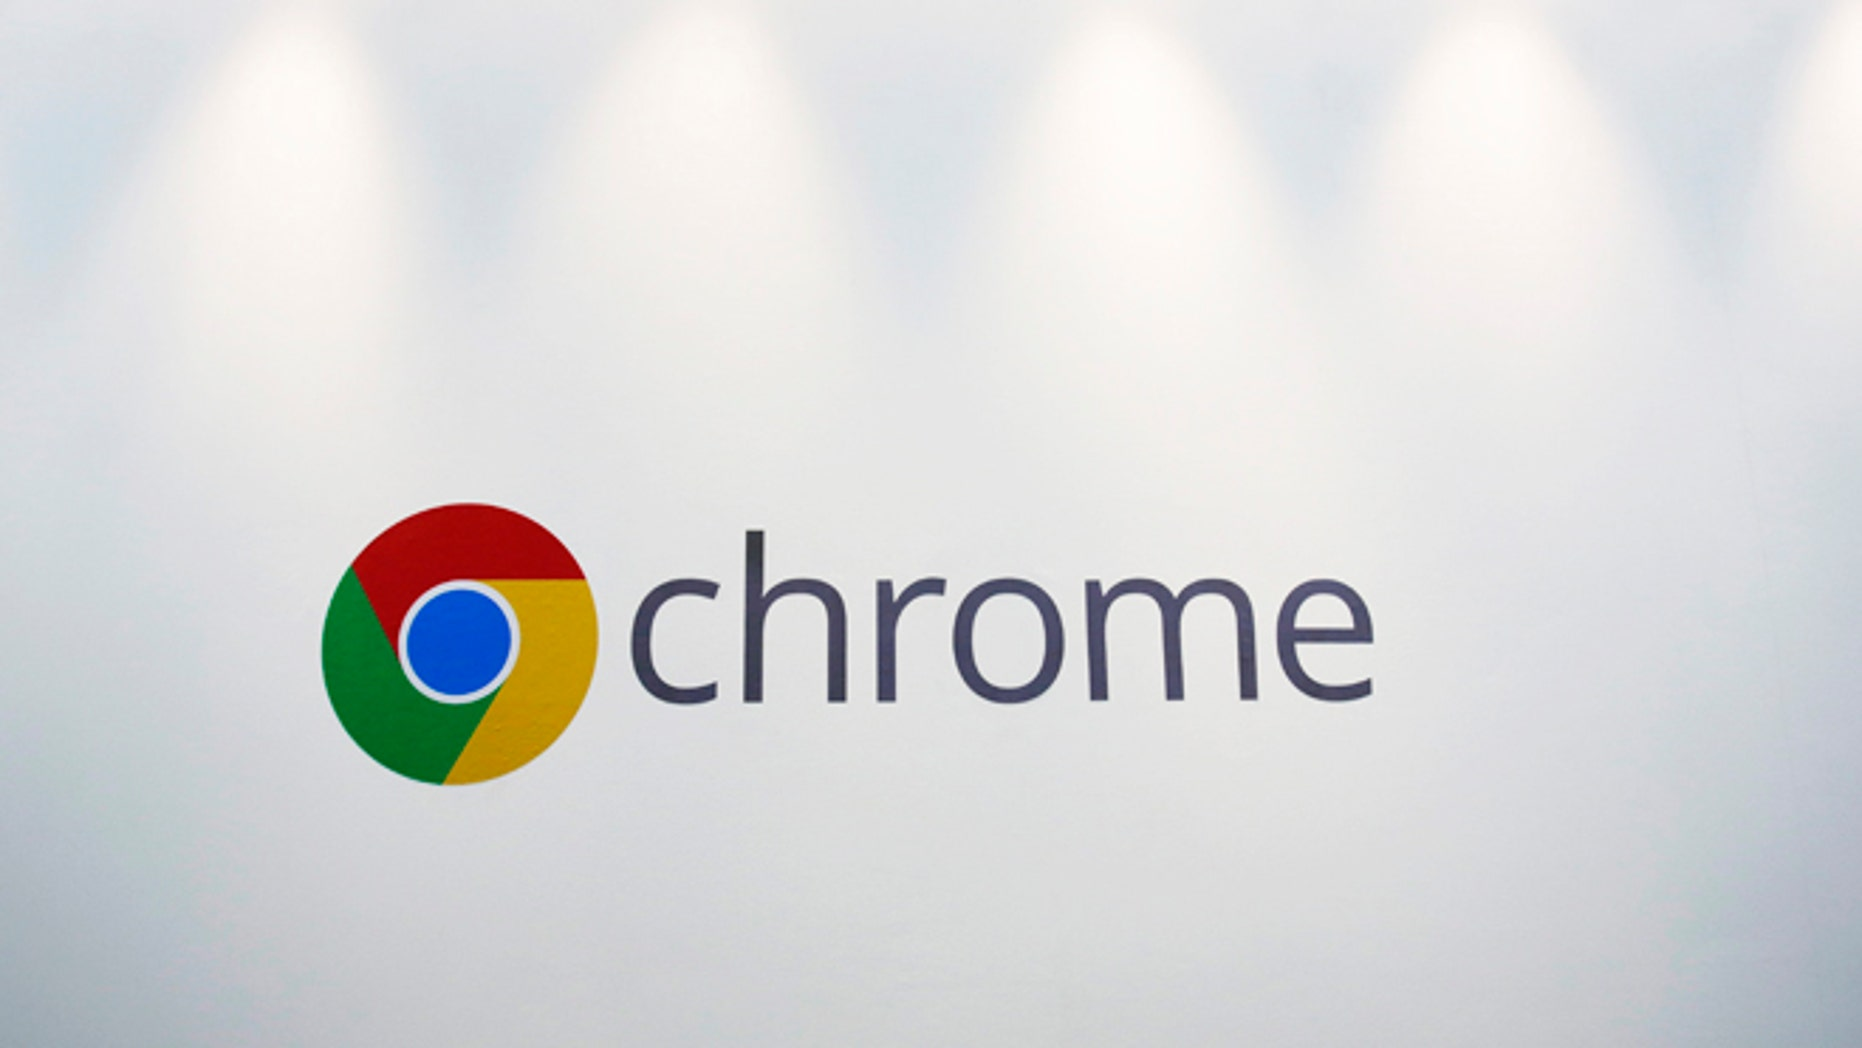 File photo - Oct. 8, 2013: The Chrome logo is displayed at a Google event in New York to unveil a $279 Chromebook.